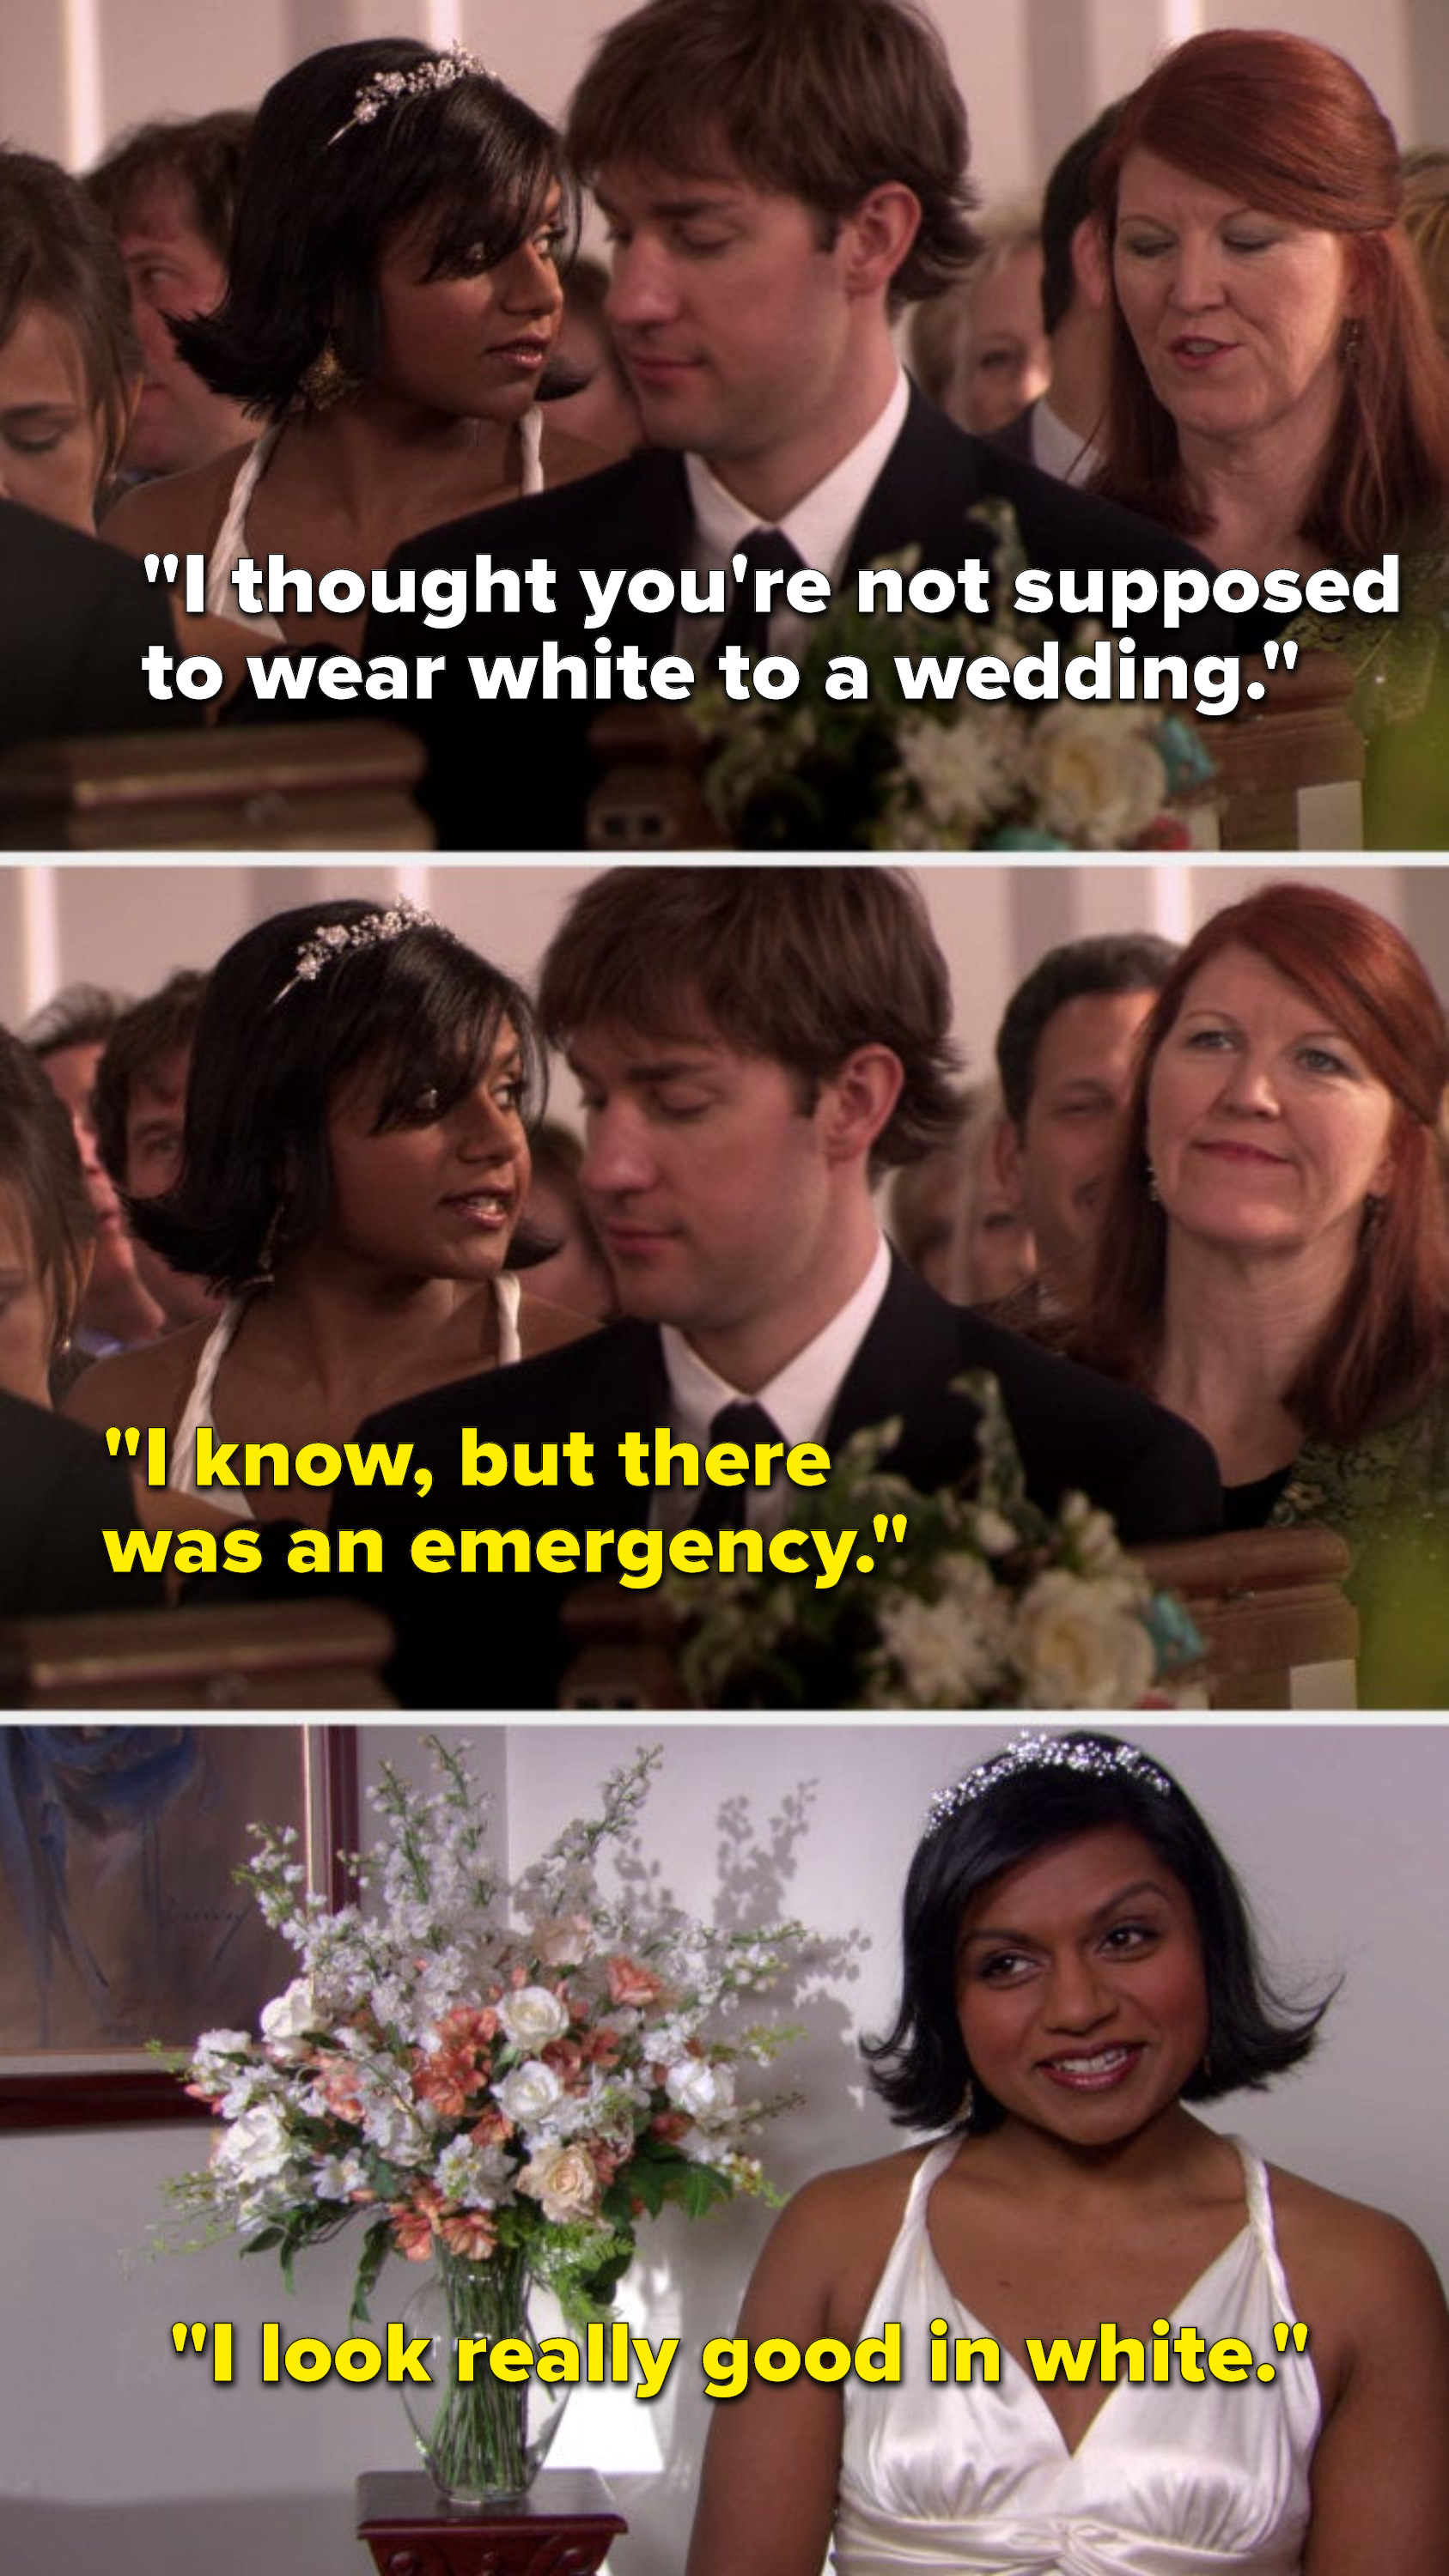 Meredith says, I thought you're not supposed to wear white to a wedding, Kelly says, I know, but there was an emergency, and then, in a talking head, she says, I look really good in white